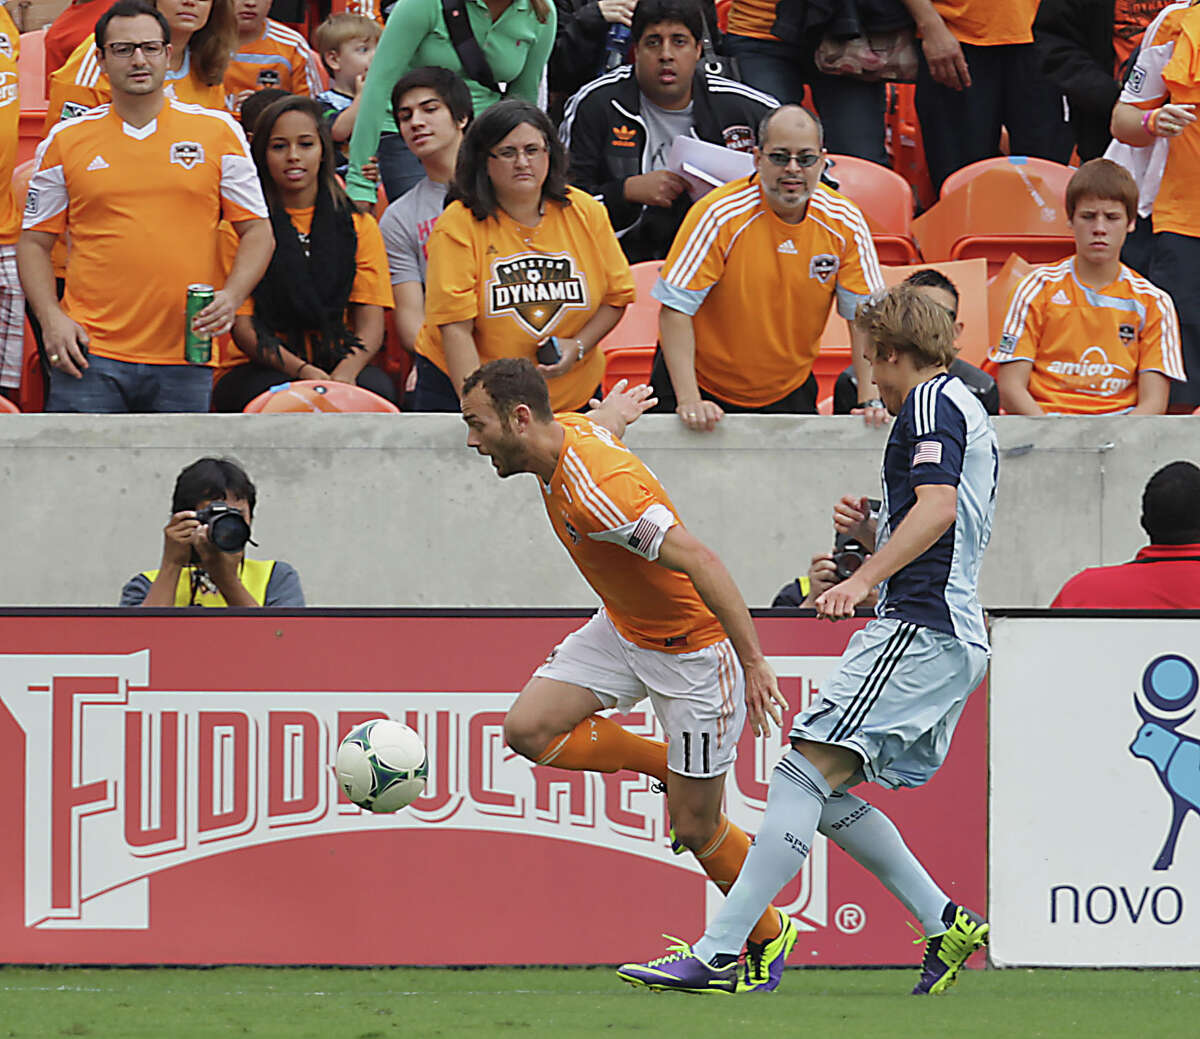 Houston Dynamo midfielder Brad Davis left, and Sporting KC defender/midfielder Chance Myers right, during the first half of the MLS Eastern Conference Final game at BBVA Compass Stadium Saturday, Nov. 9, 2013, in Houston.